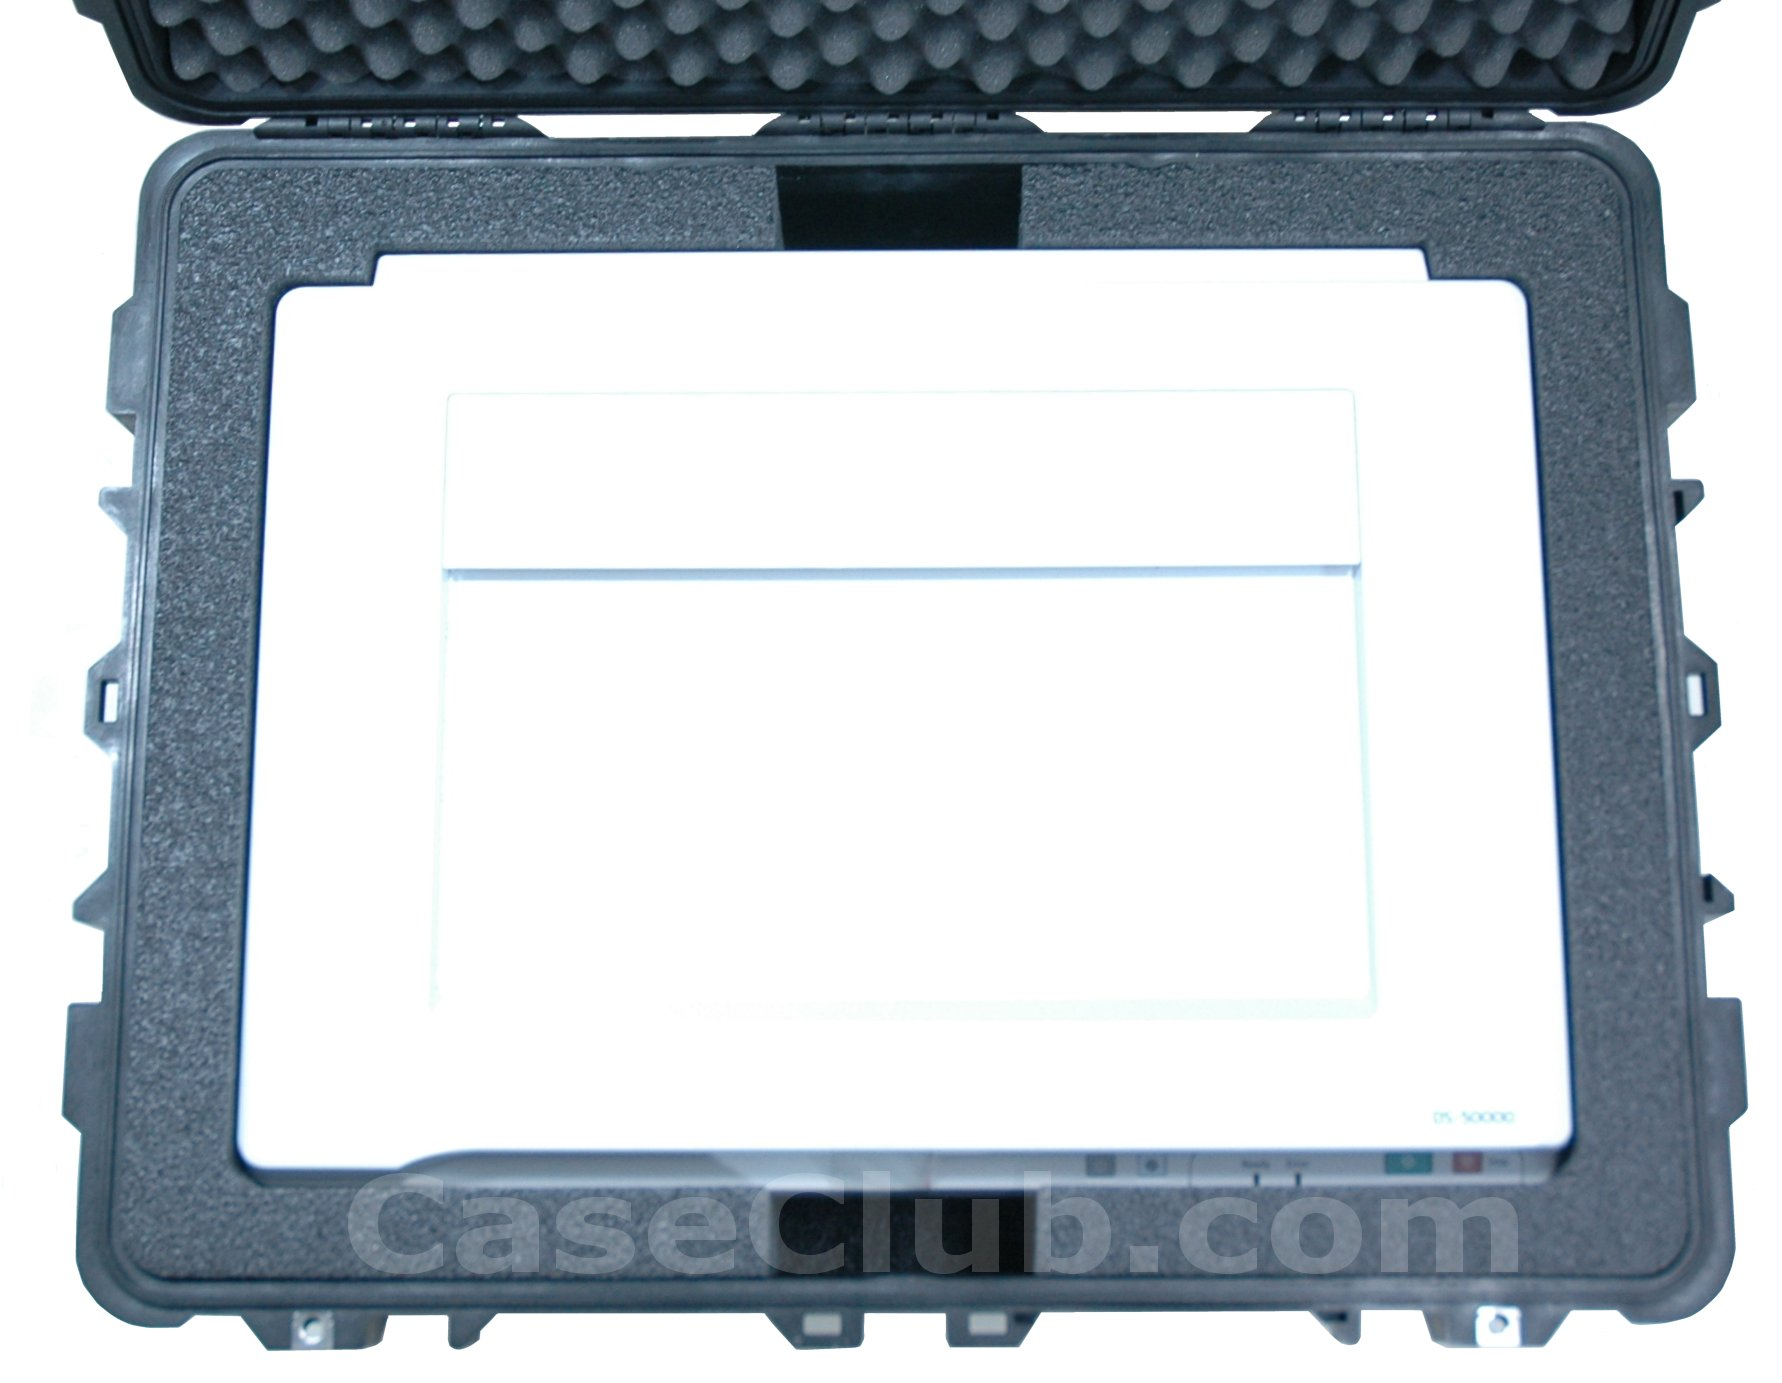 Pelican™ 1630 Case Custom Foam Example: Epson WorkForce DS-50000 Scanner Case